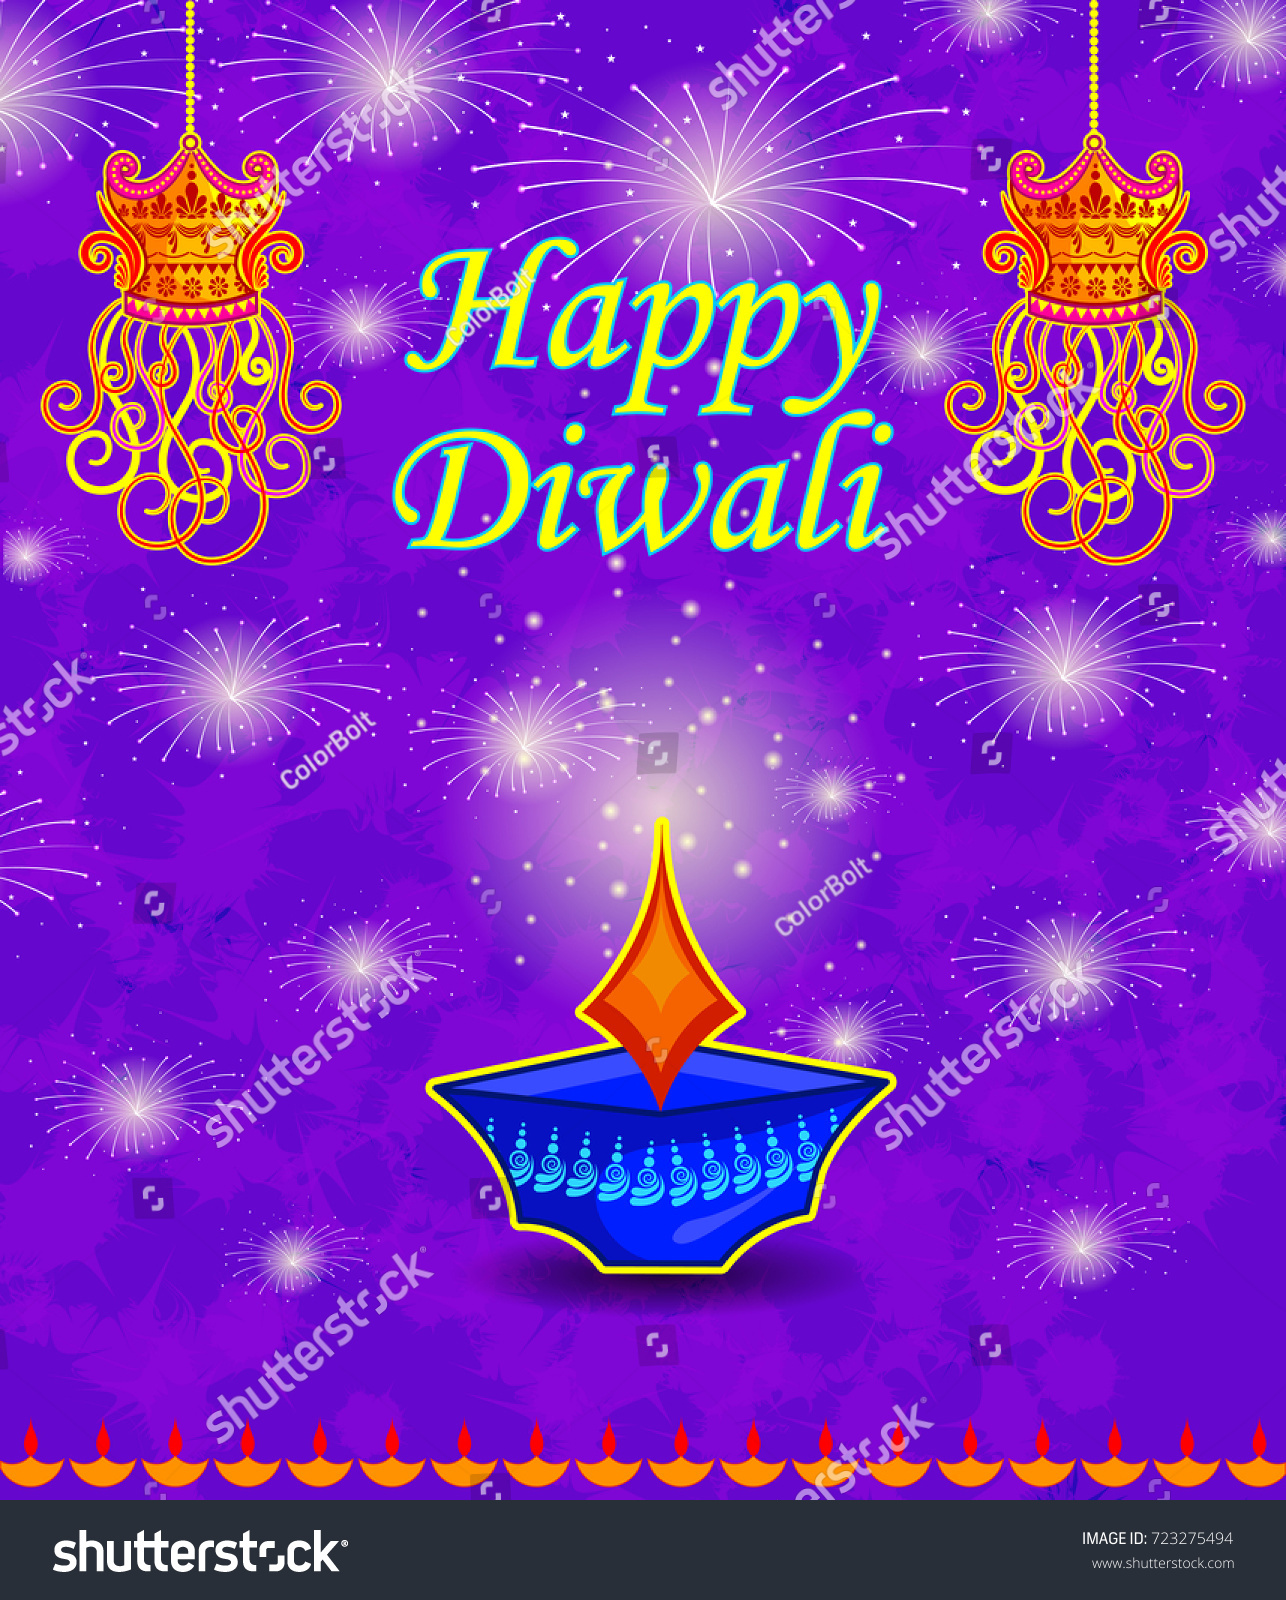 Happy Diwali Light Festival India Greeting Stock Vector Royalty